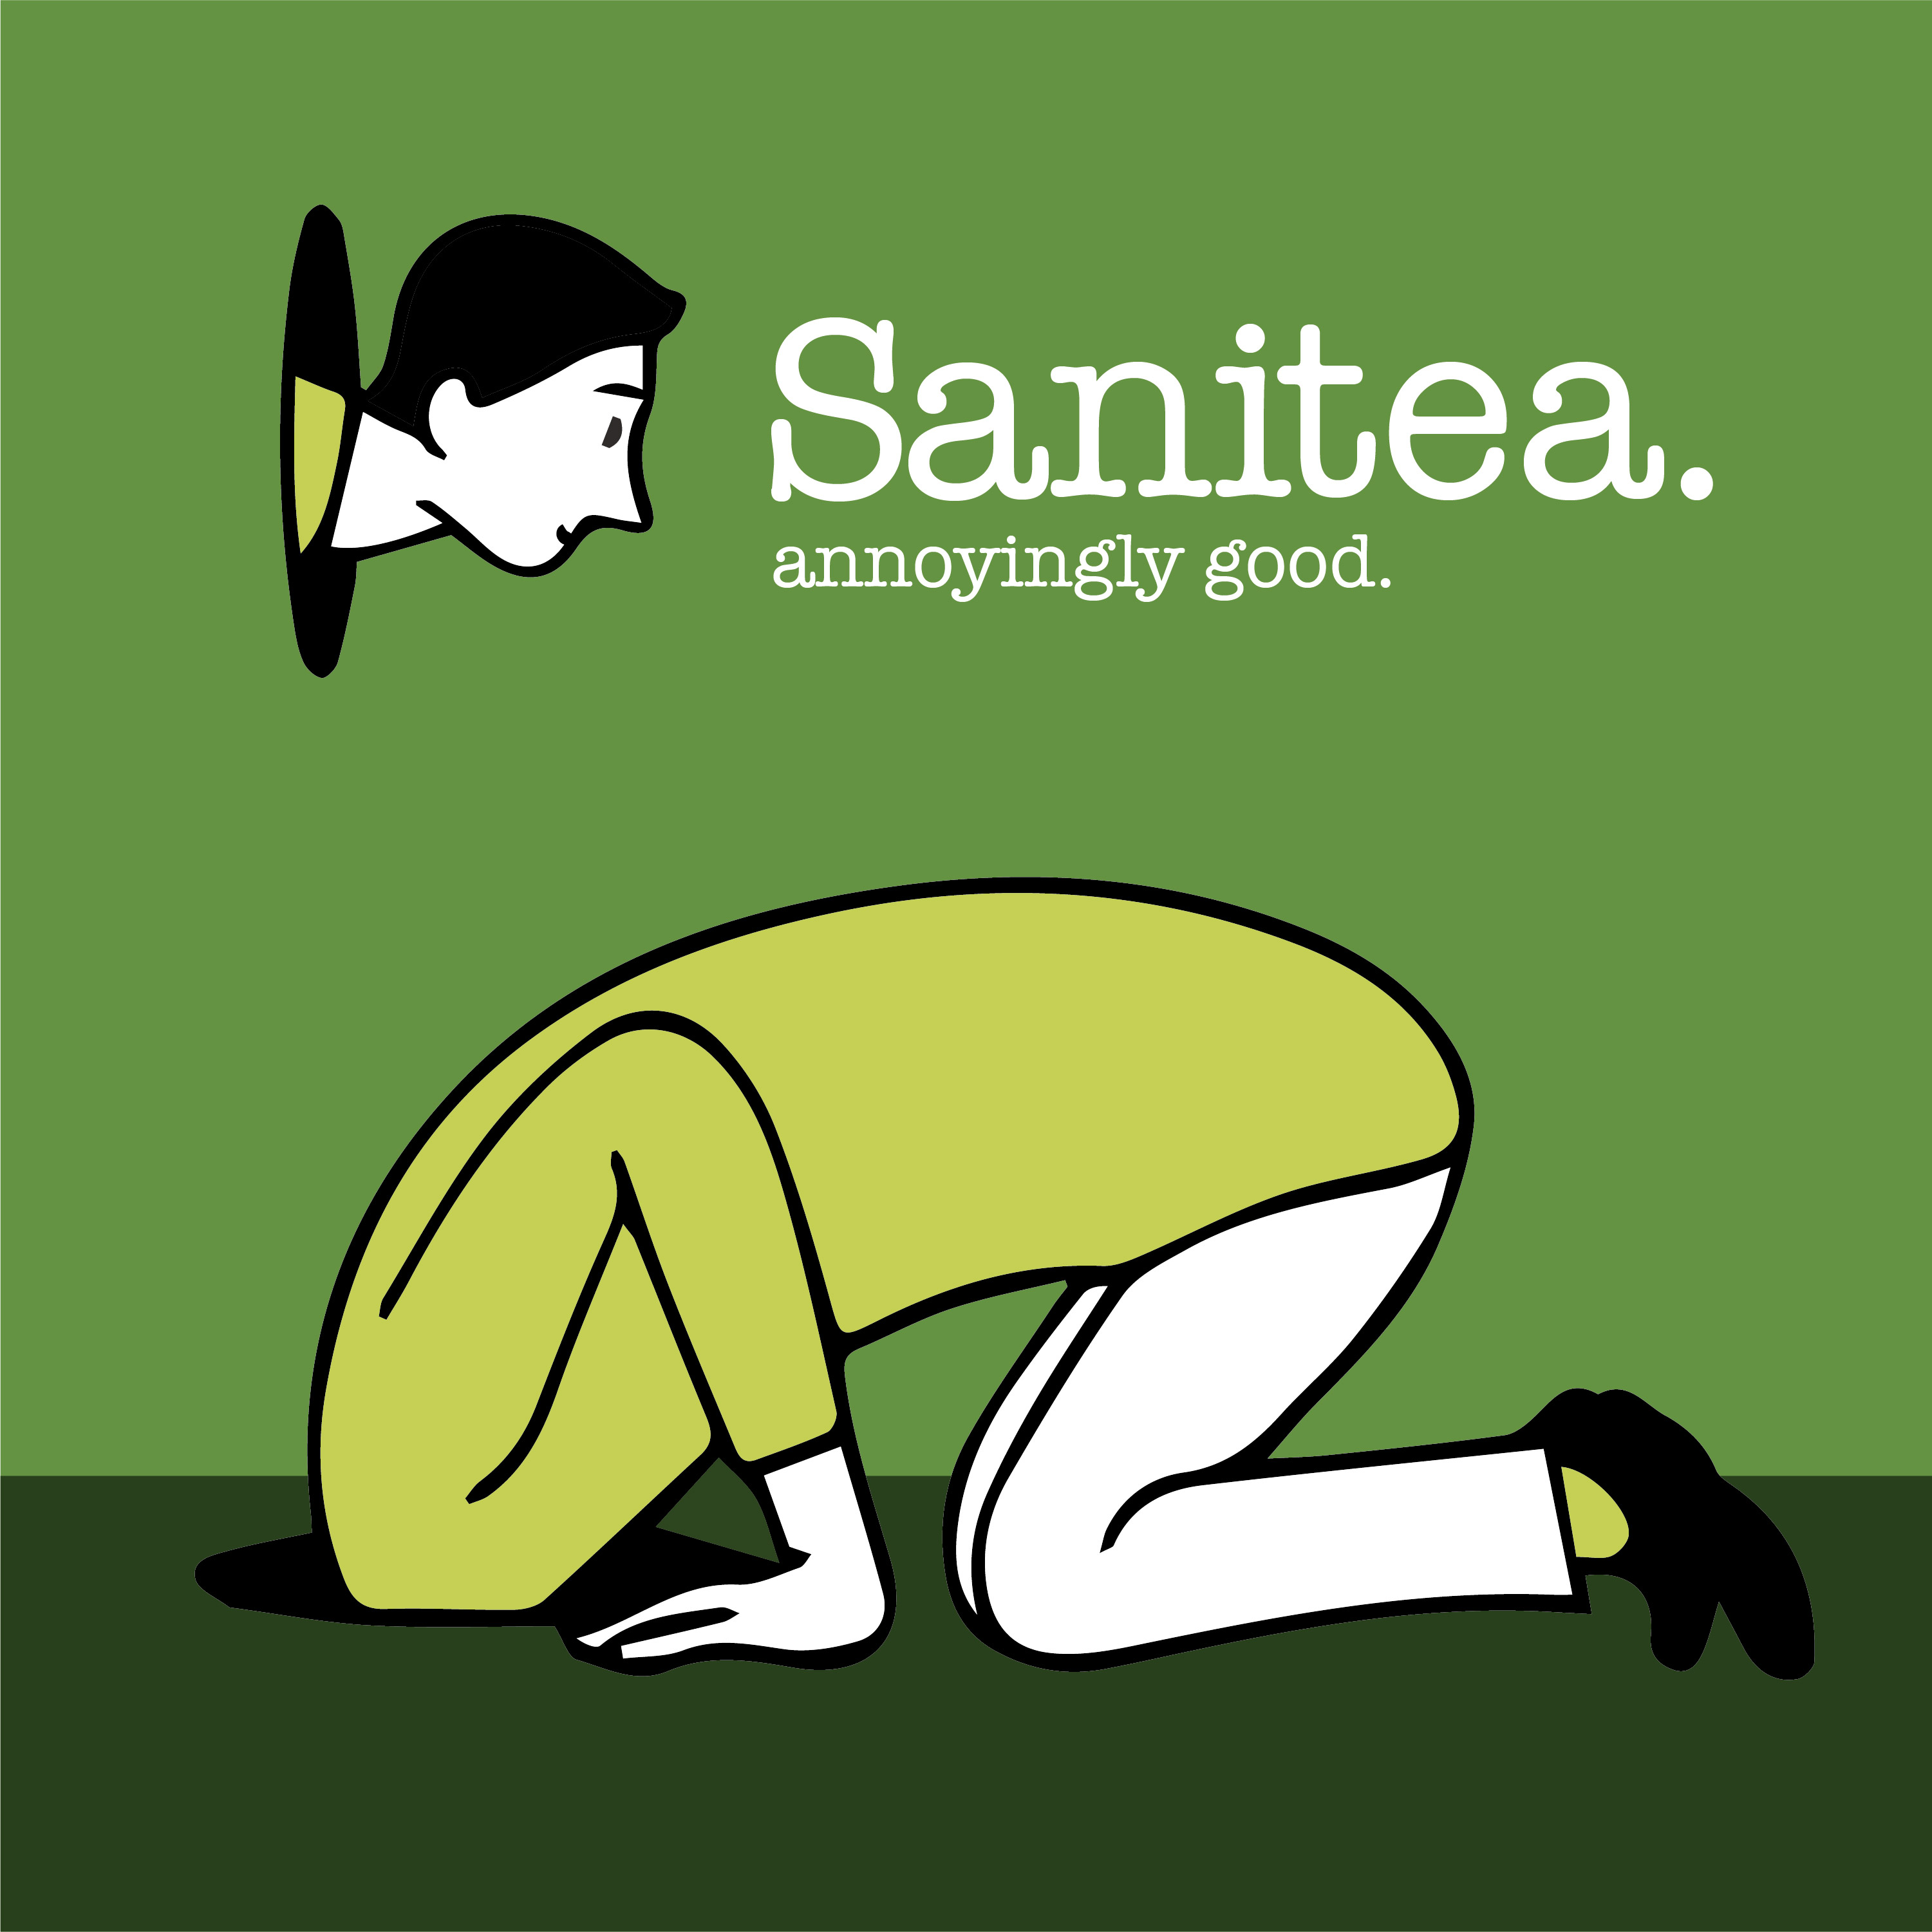 Sanitea Concept that Promotes Calm and Fosters Balance, Designed by Work and Company